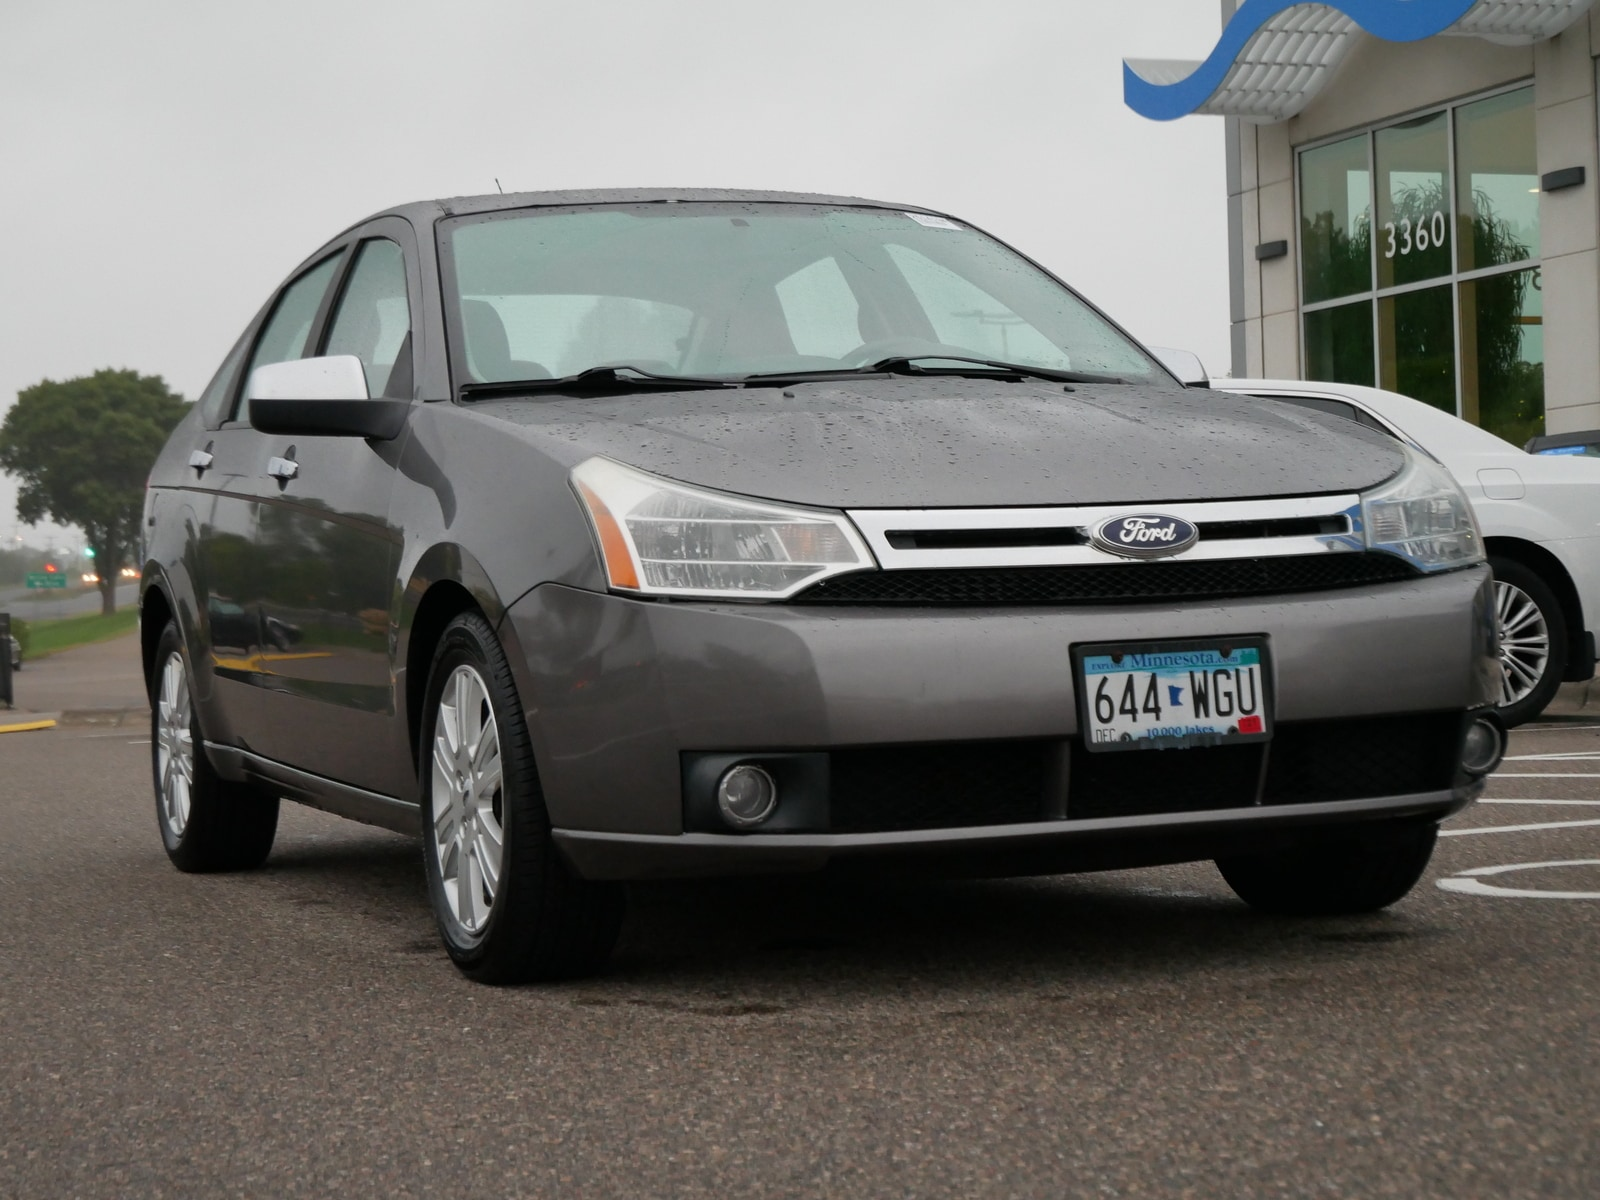 Used 2011 Ford Focus SEL with VIN 1FAHP3HNXBW149456 for sale in Saint Paul, Minnesota